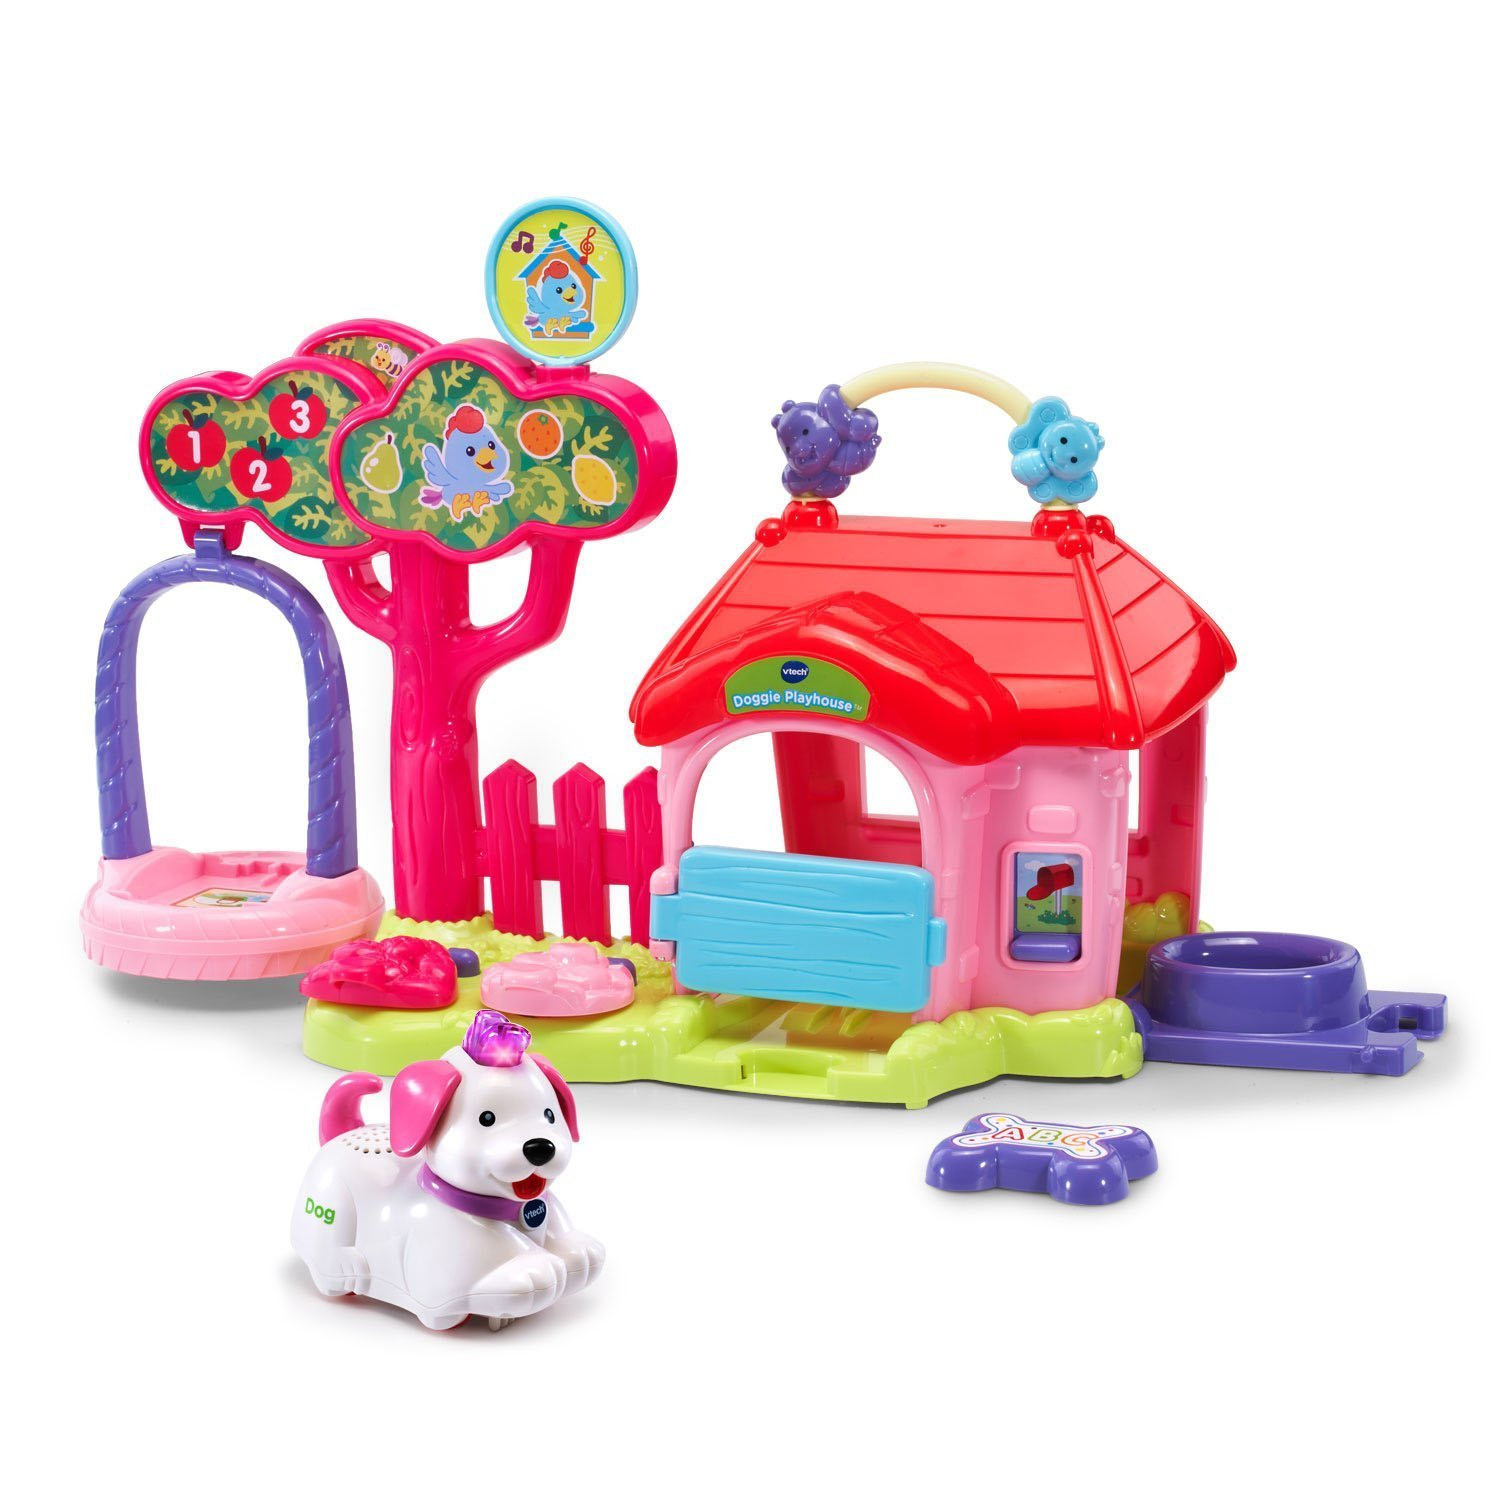 Go! Go! Smart Animals Doggie Playhouse Pink Online Special Edition, Explore this online... by